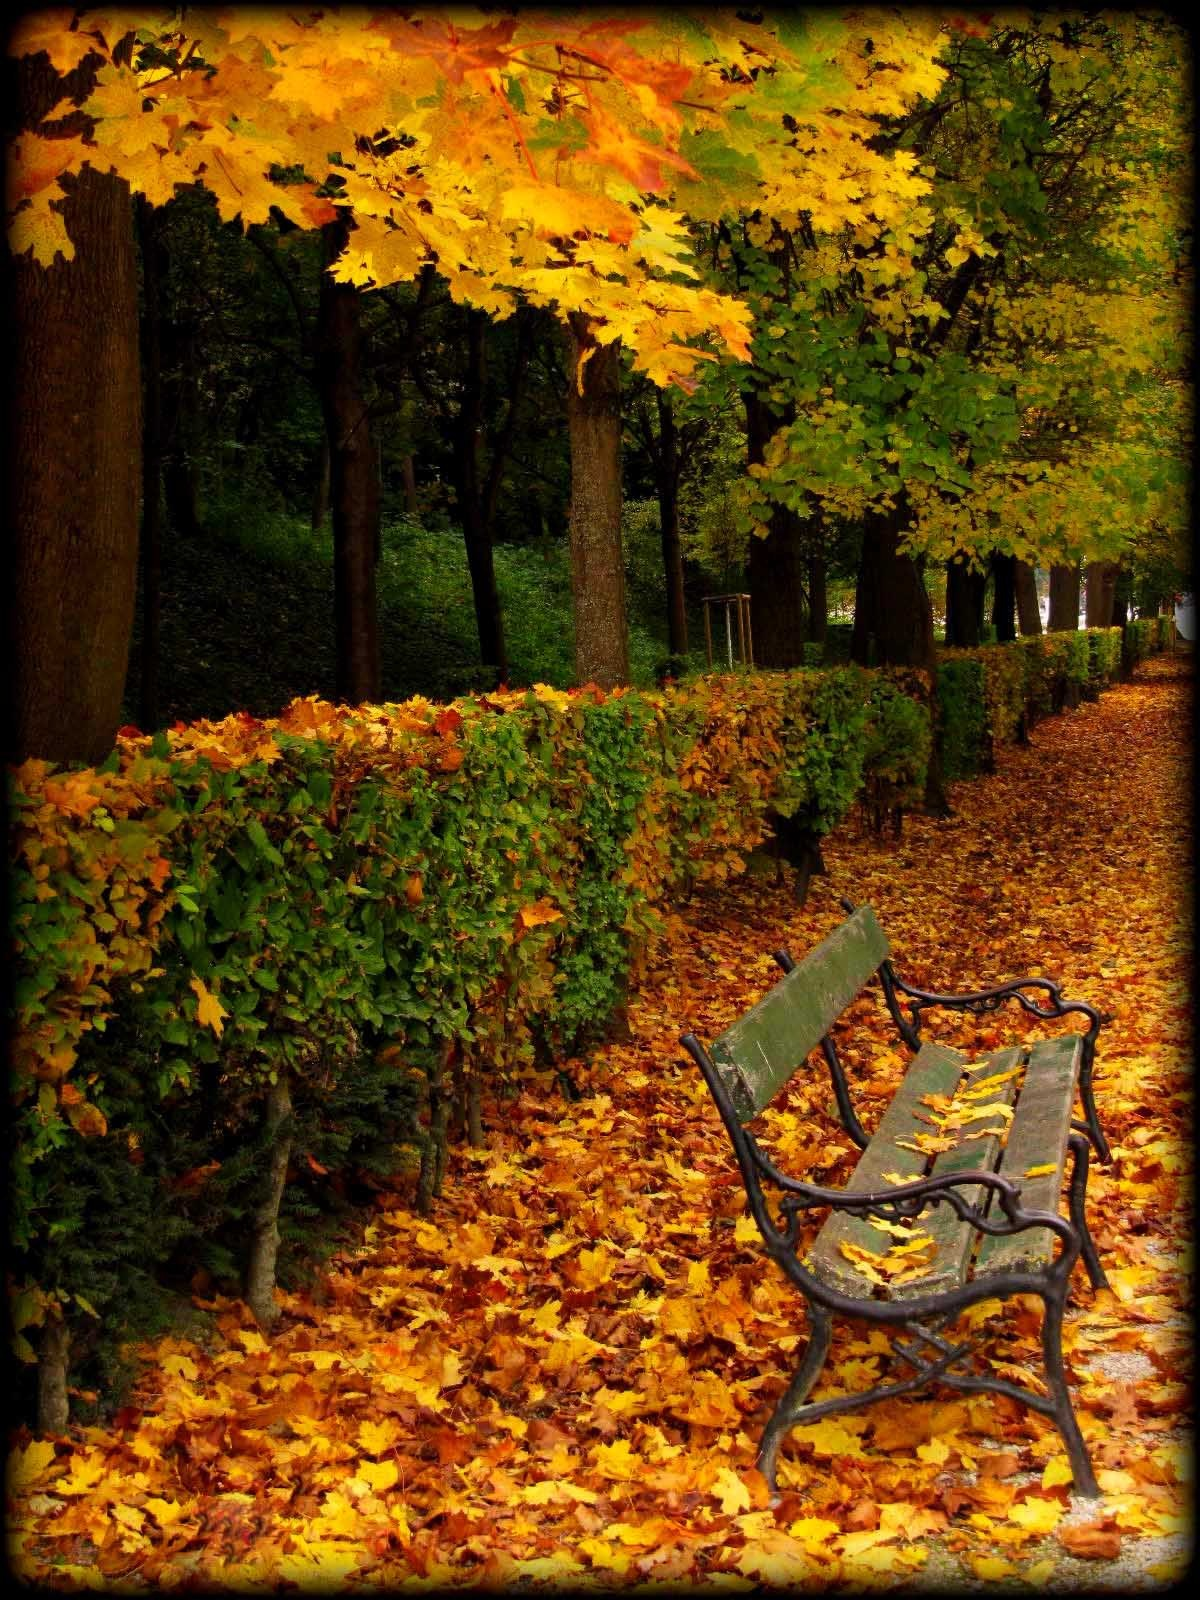 Autumn in Vienna, Austria.